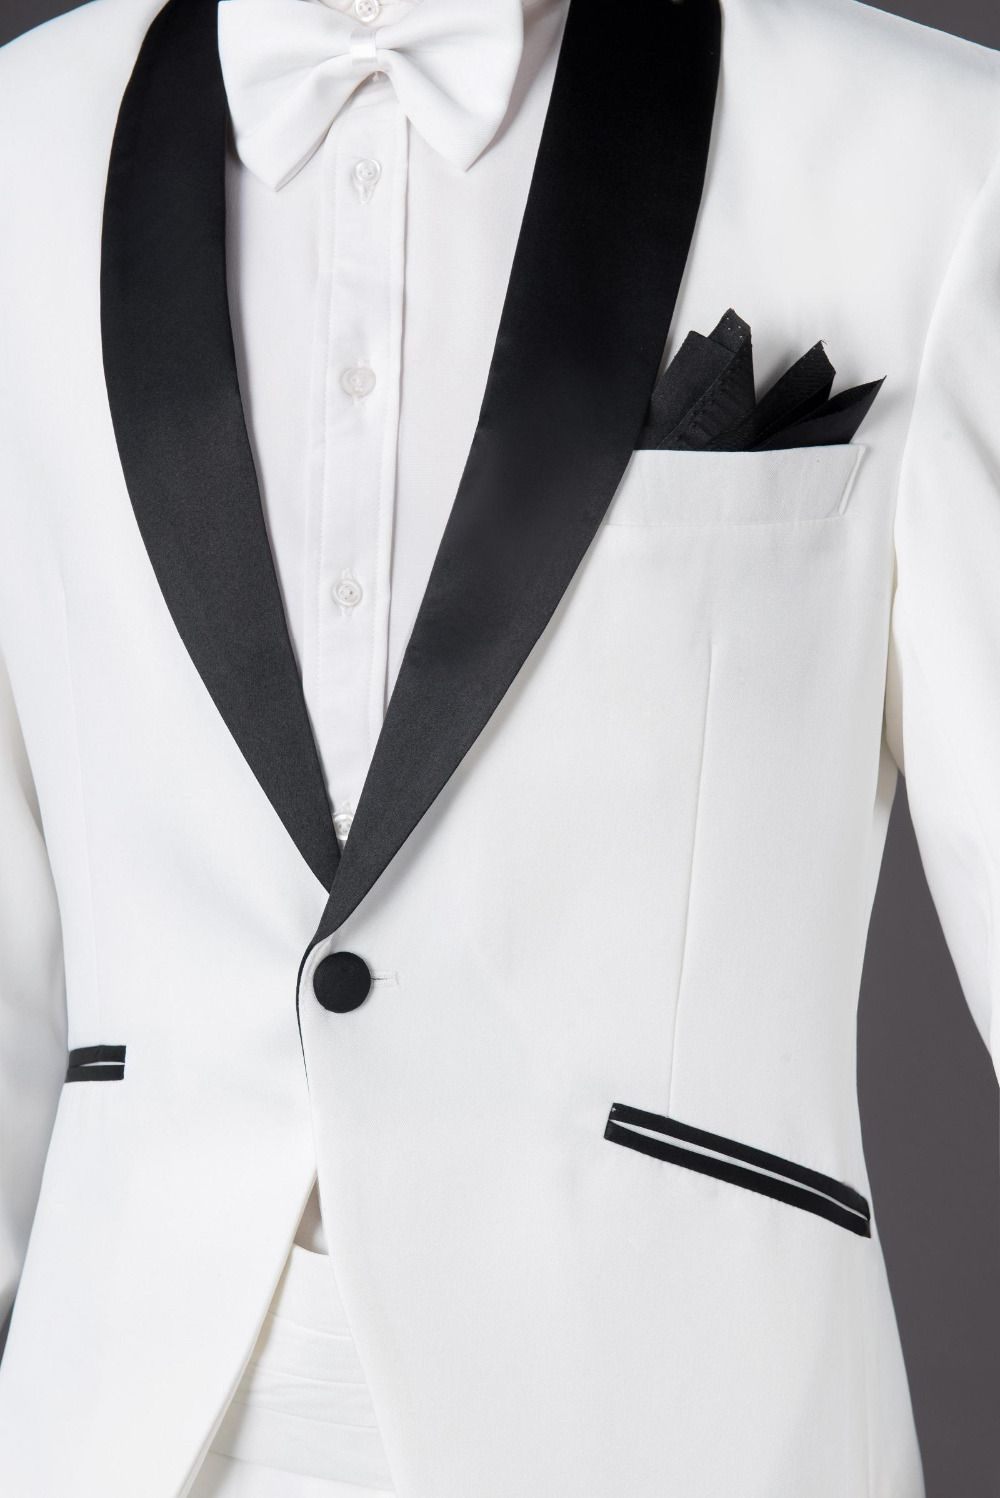 a4886df7b Brand White Tuxedo Jacket Men Suit Tuxedo 2016 New Arrival Mens Slim Black  Lapel Suits With Pants Groom Wedding Suits For Men-in Suits from Men's  Clothing ...